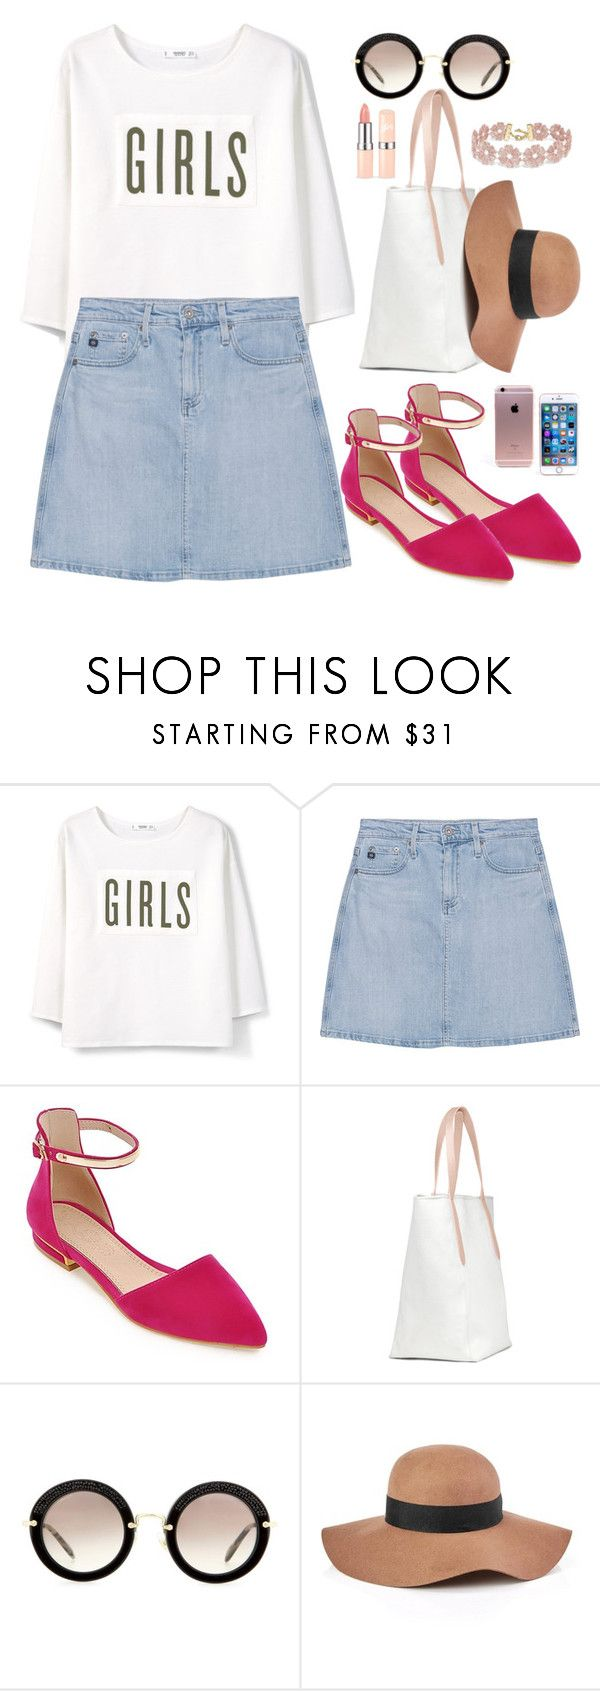 """""""Untitled #1741"""" by anarita11 ❤ liked on Polyvore featuring MANGO, AG Adriano Goldschmied, Miu Miu, Reiss and BaubleBar"""